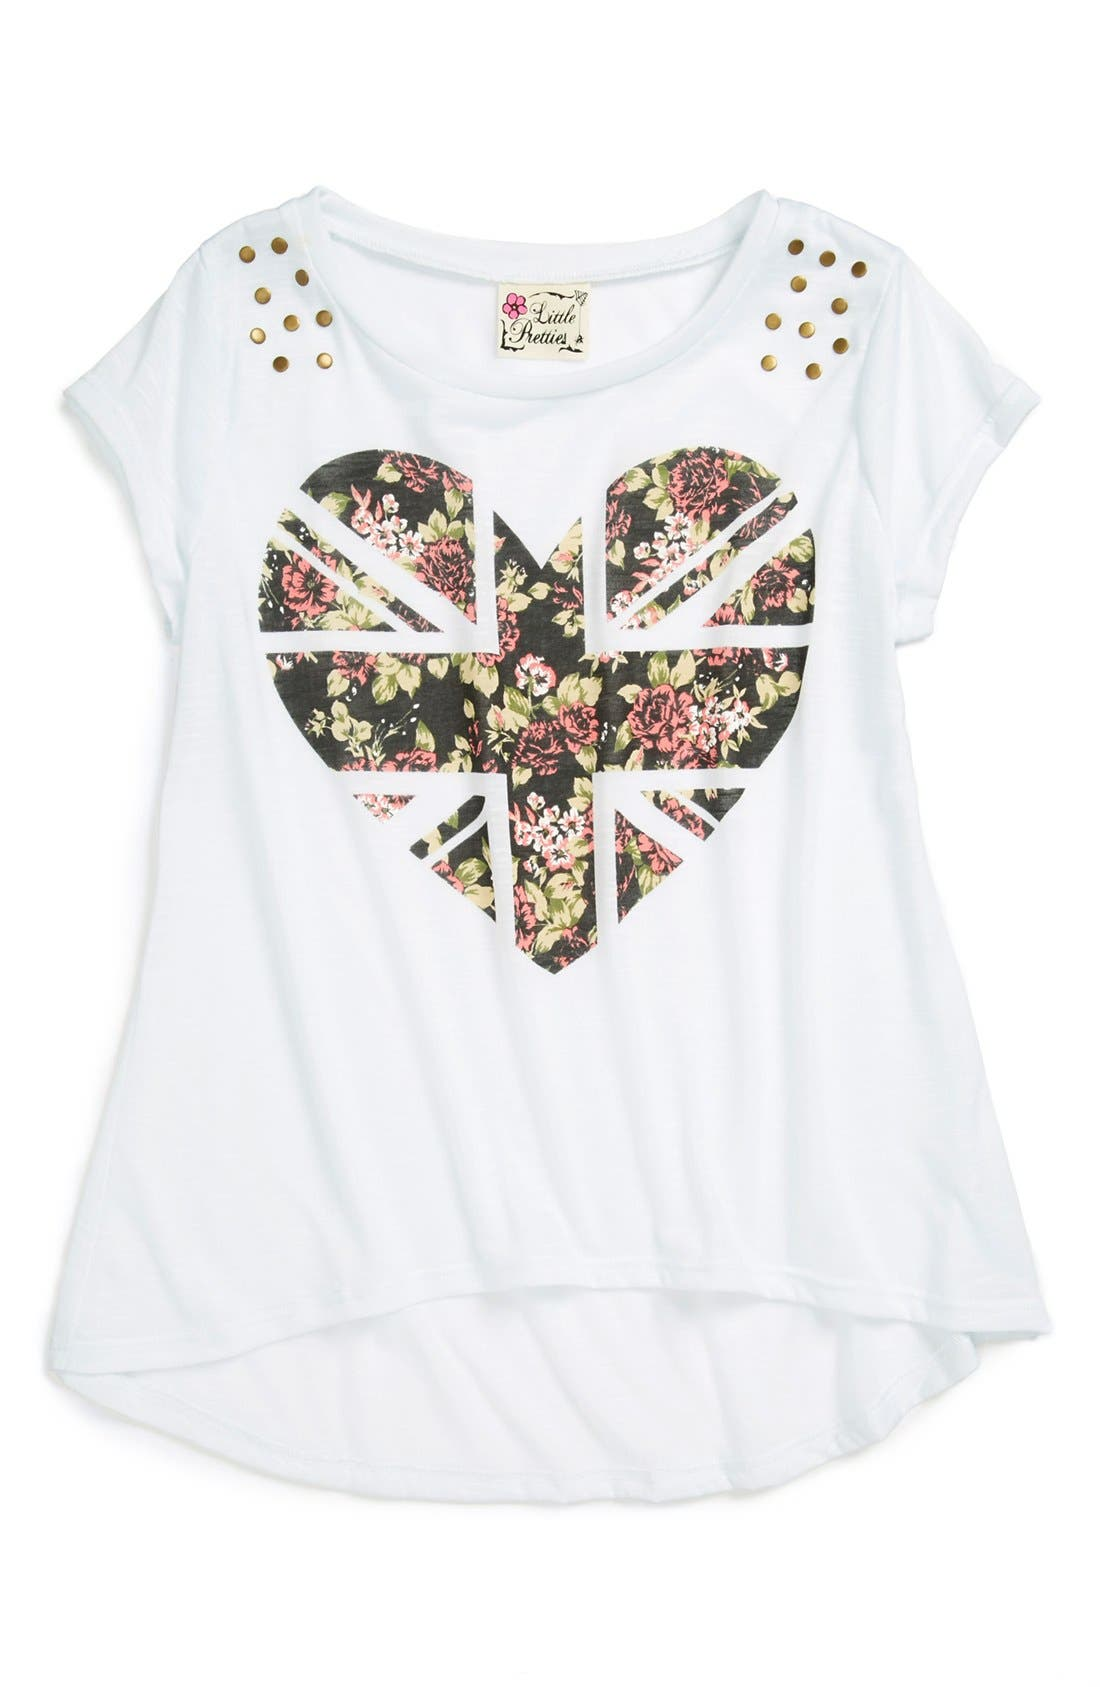 Alternate Image 1 Selected - Little Pretties High/Low Graphic Tee (Little Girls & Big Girls)